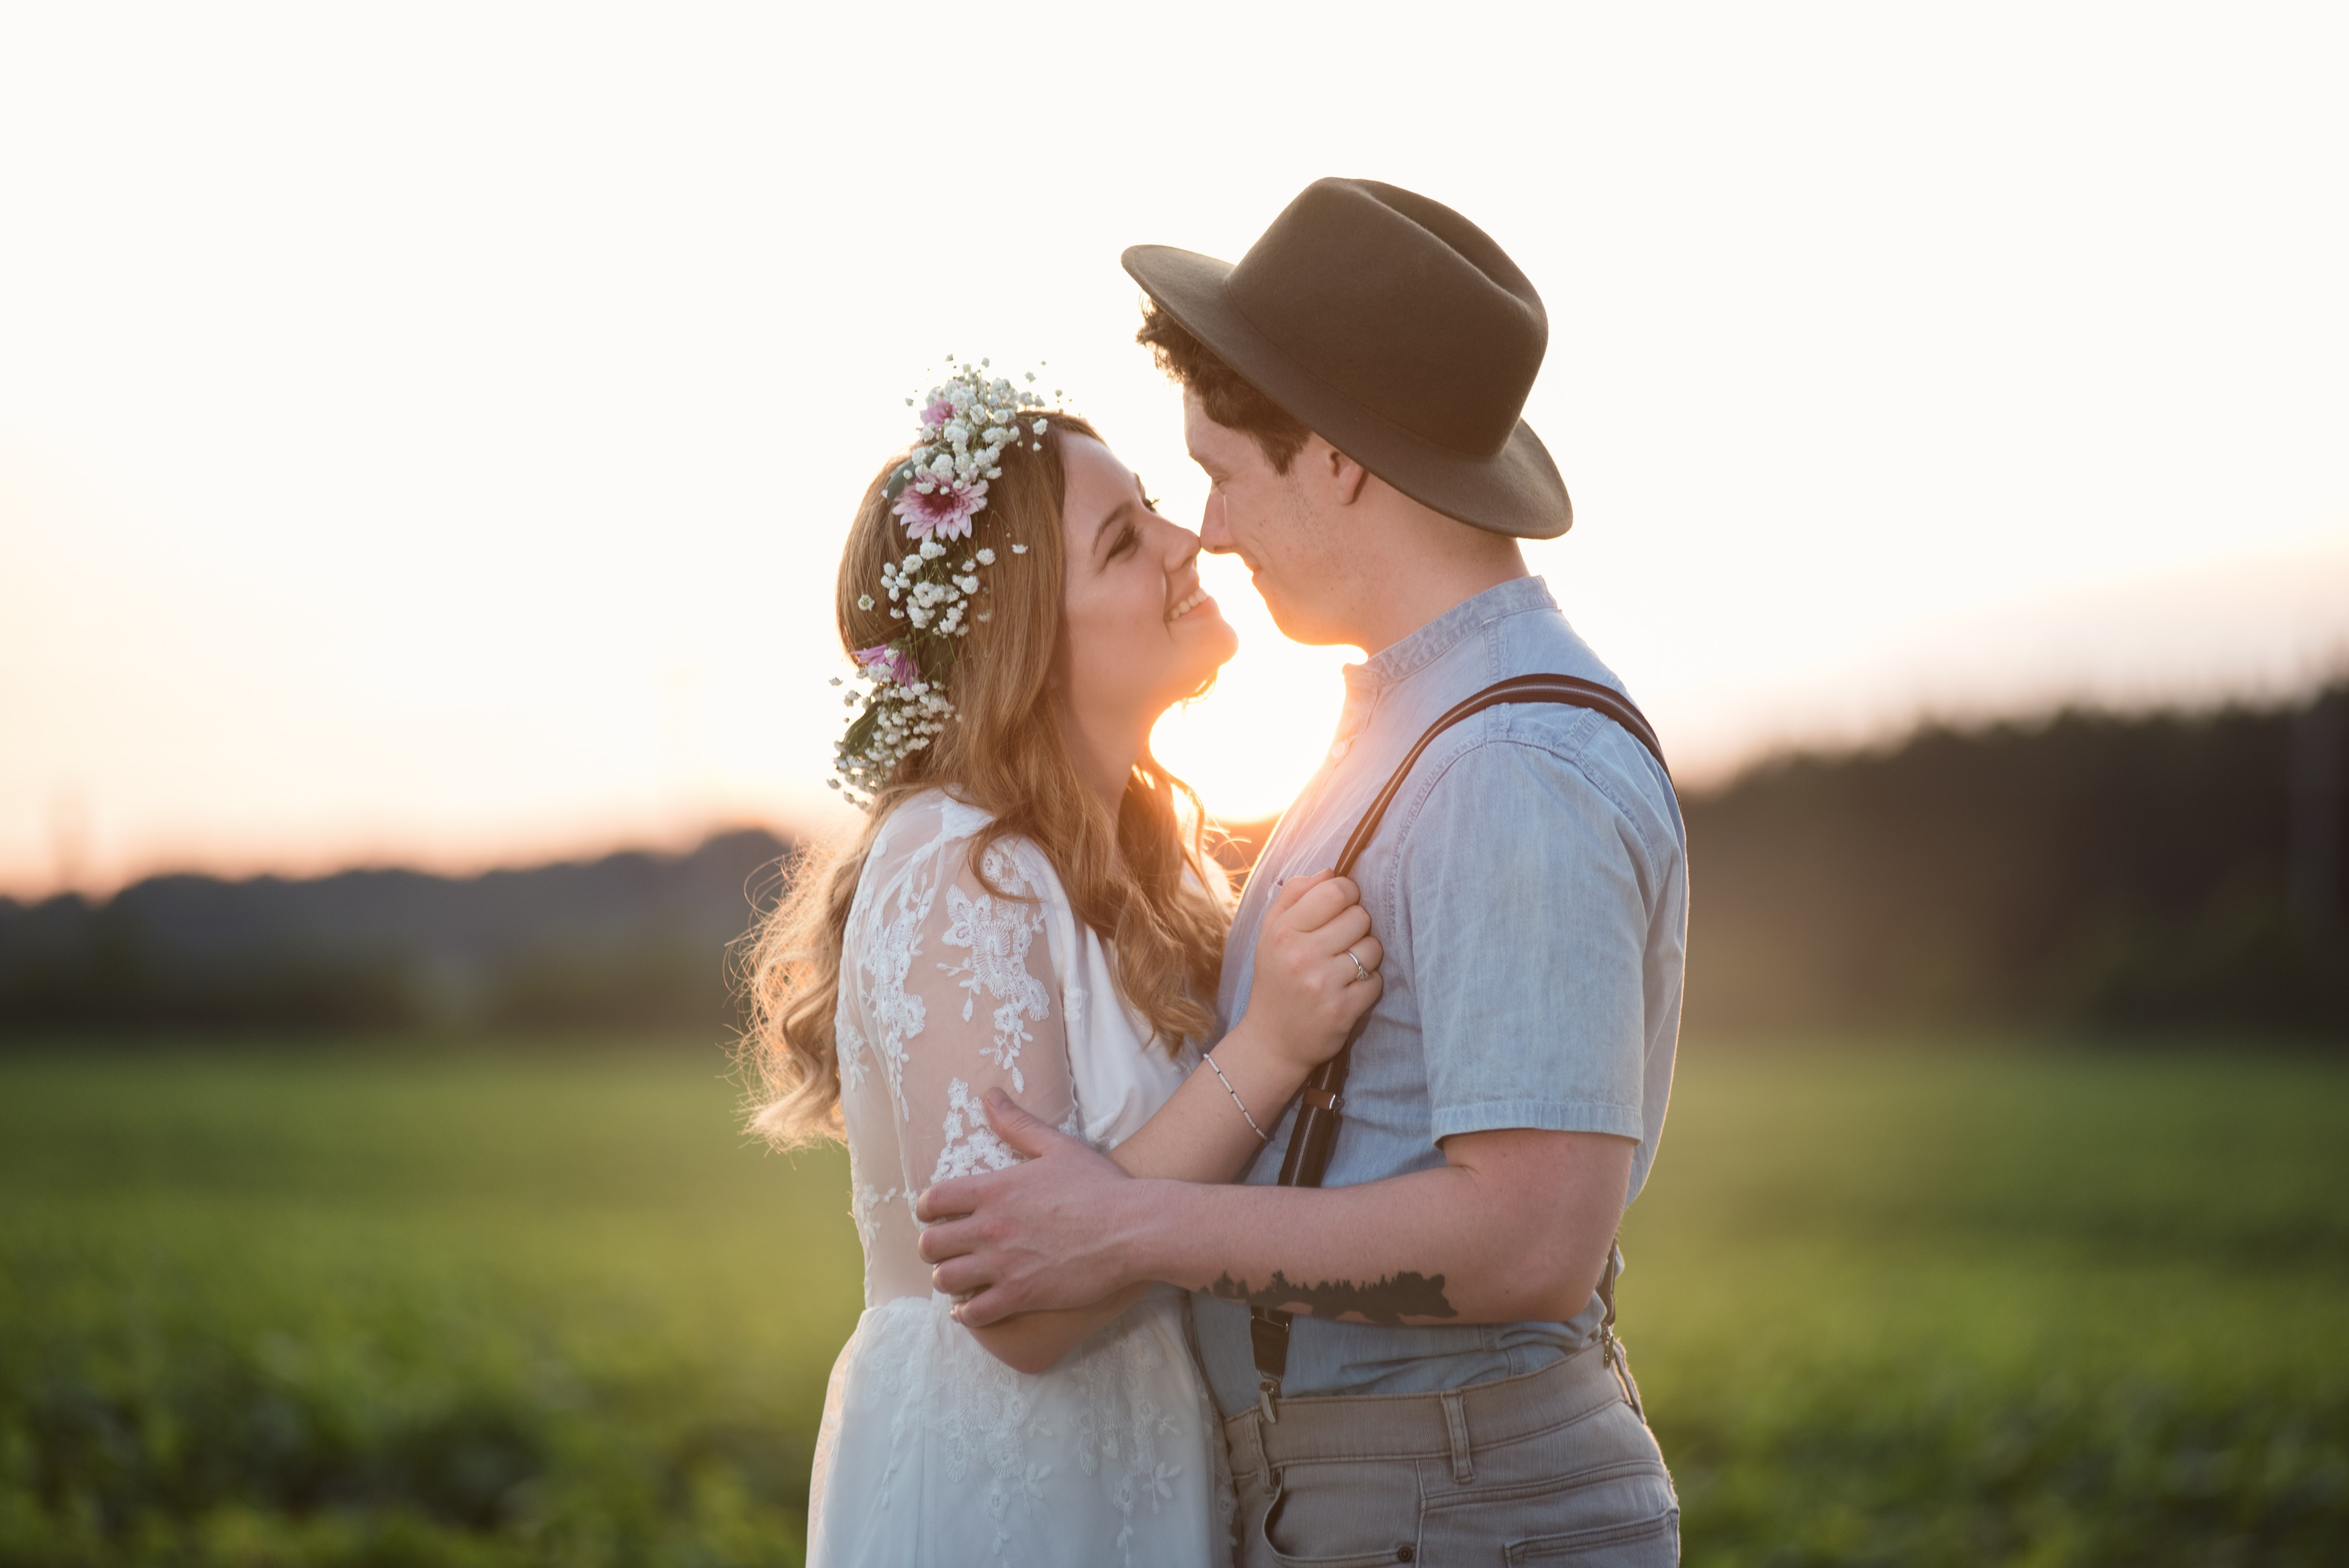 Bride with flower crown and groom with hat smile at each other at sunset